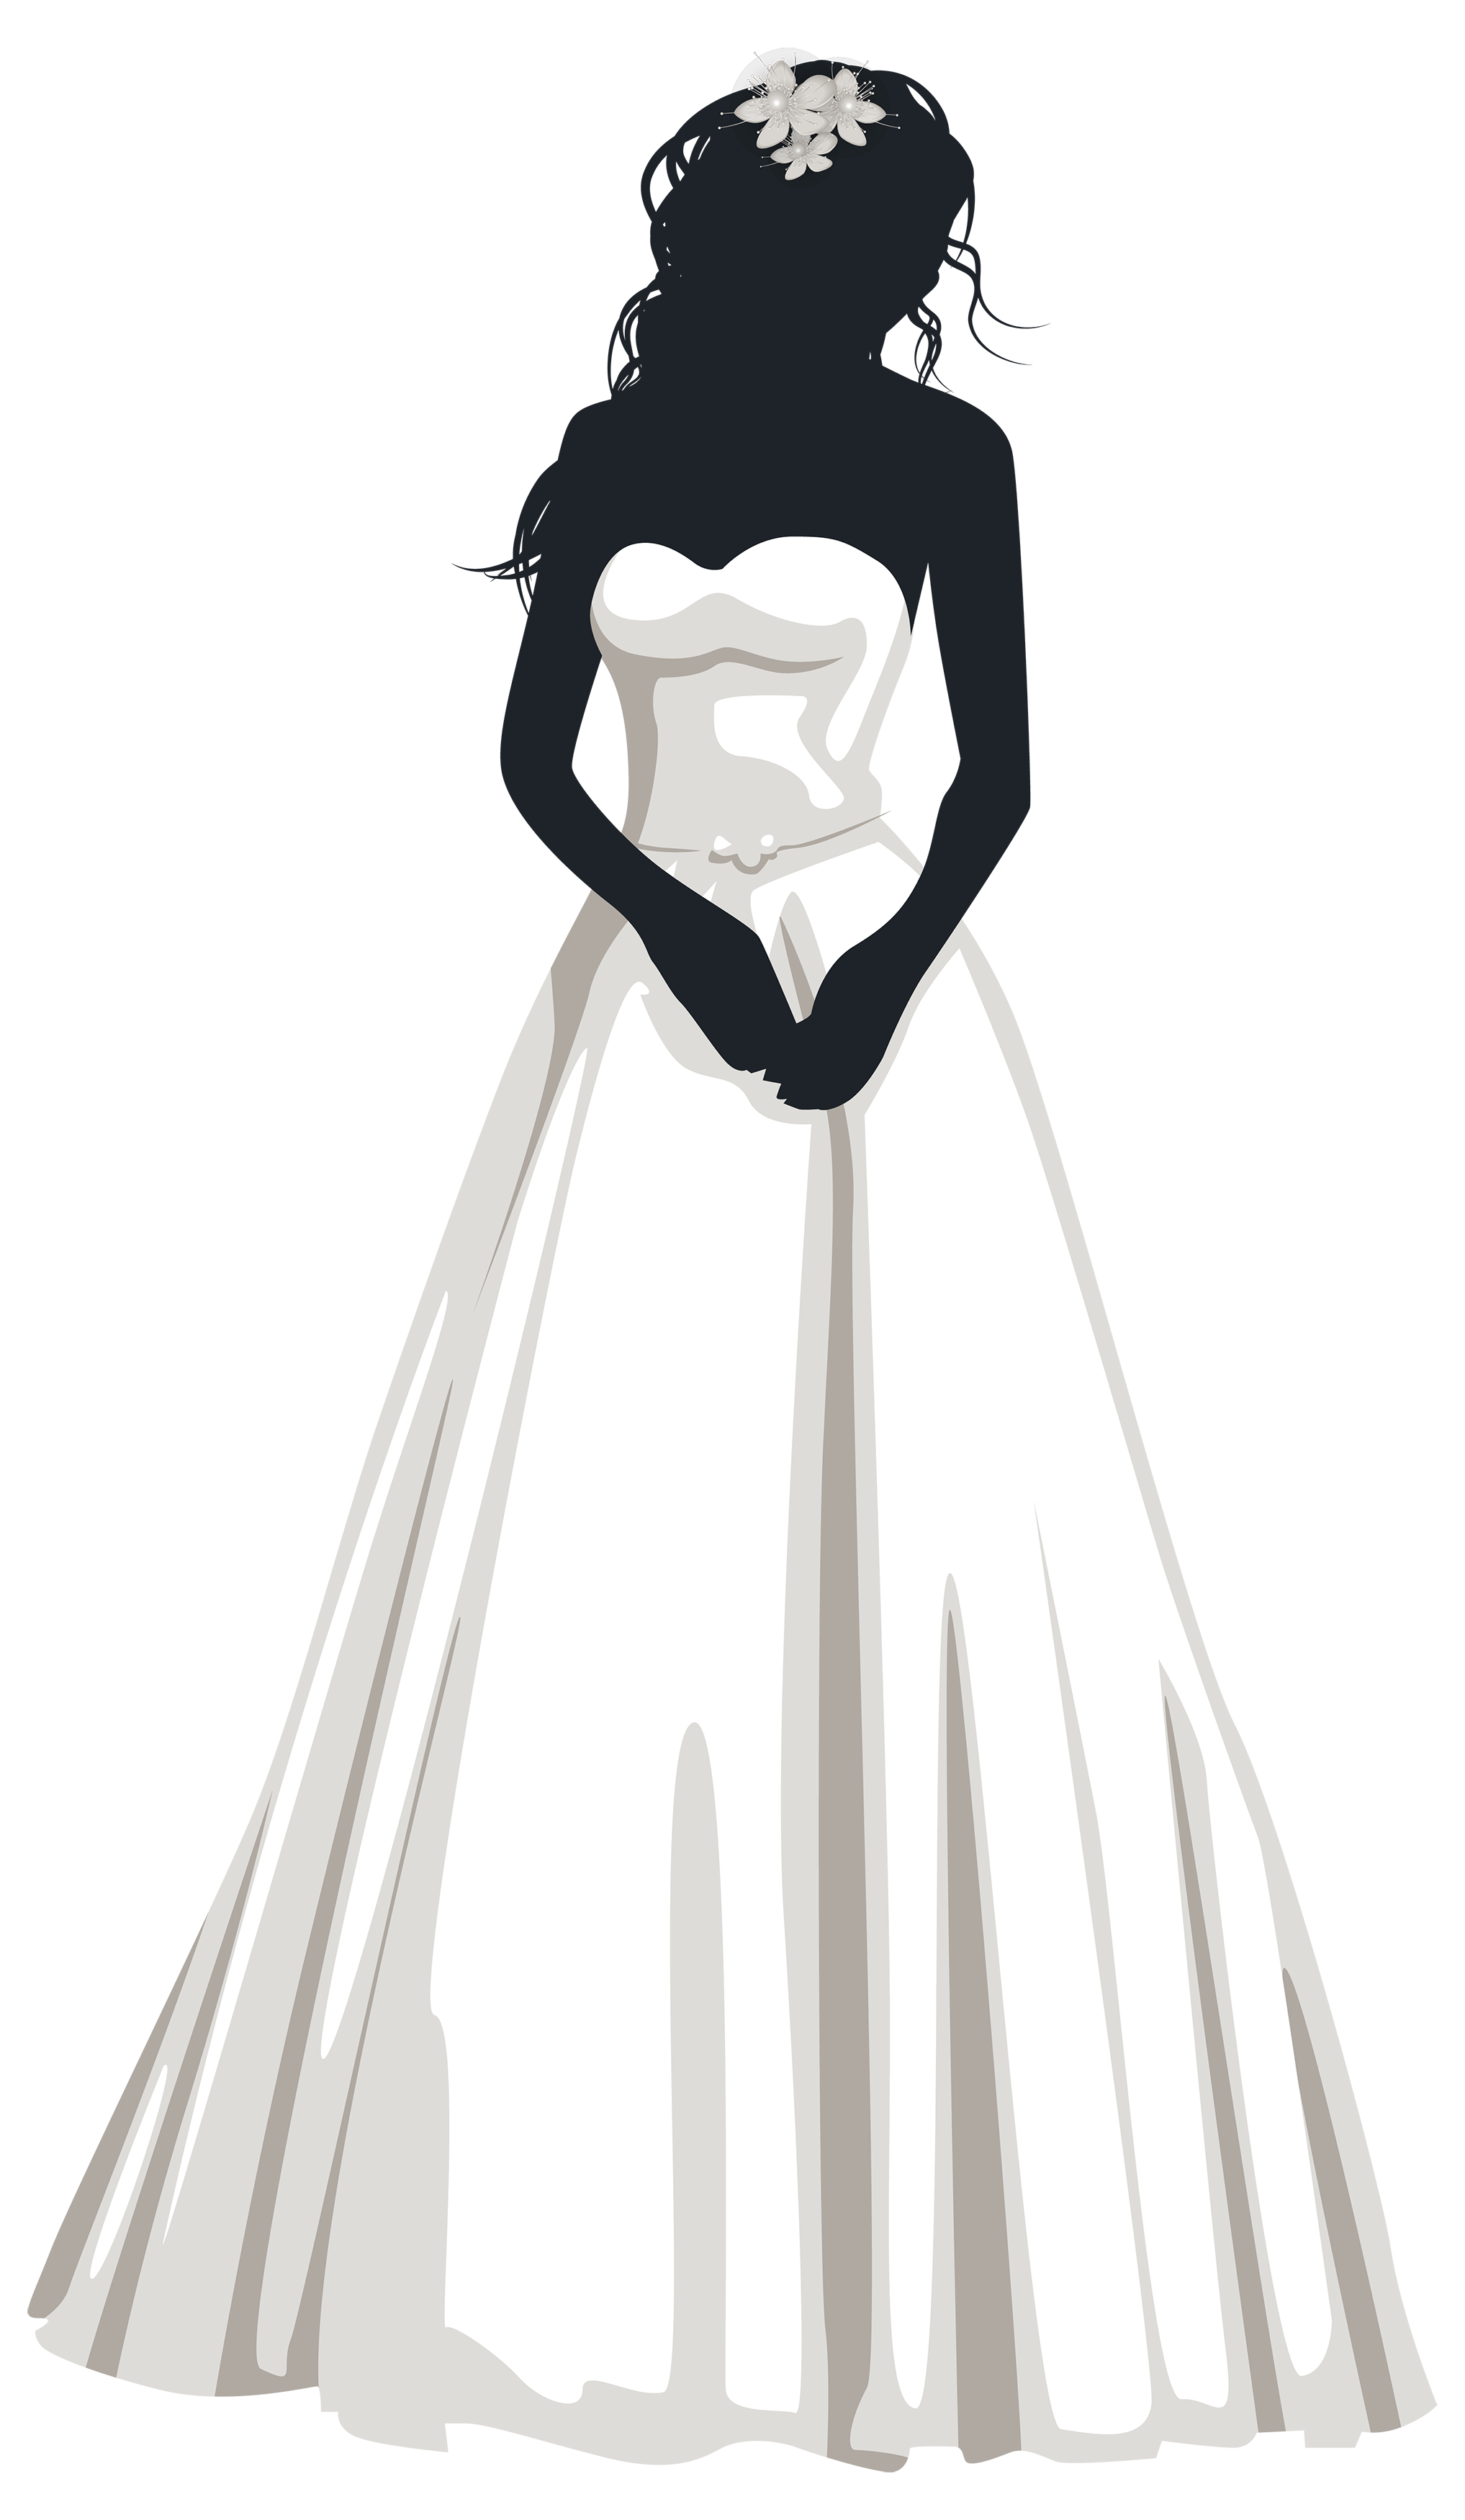 Bride Silhouette Png Free Bride Silhouette Png Transparent Images 72238 Pngio